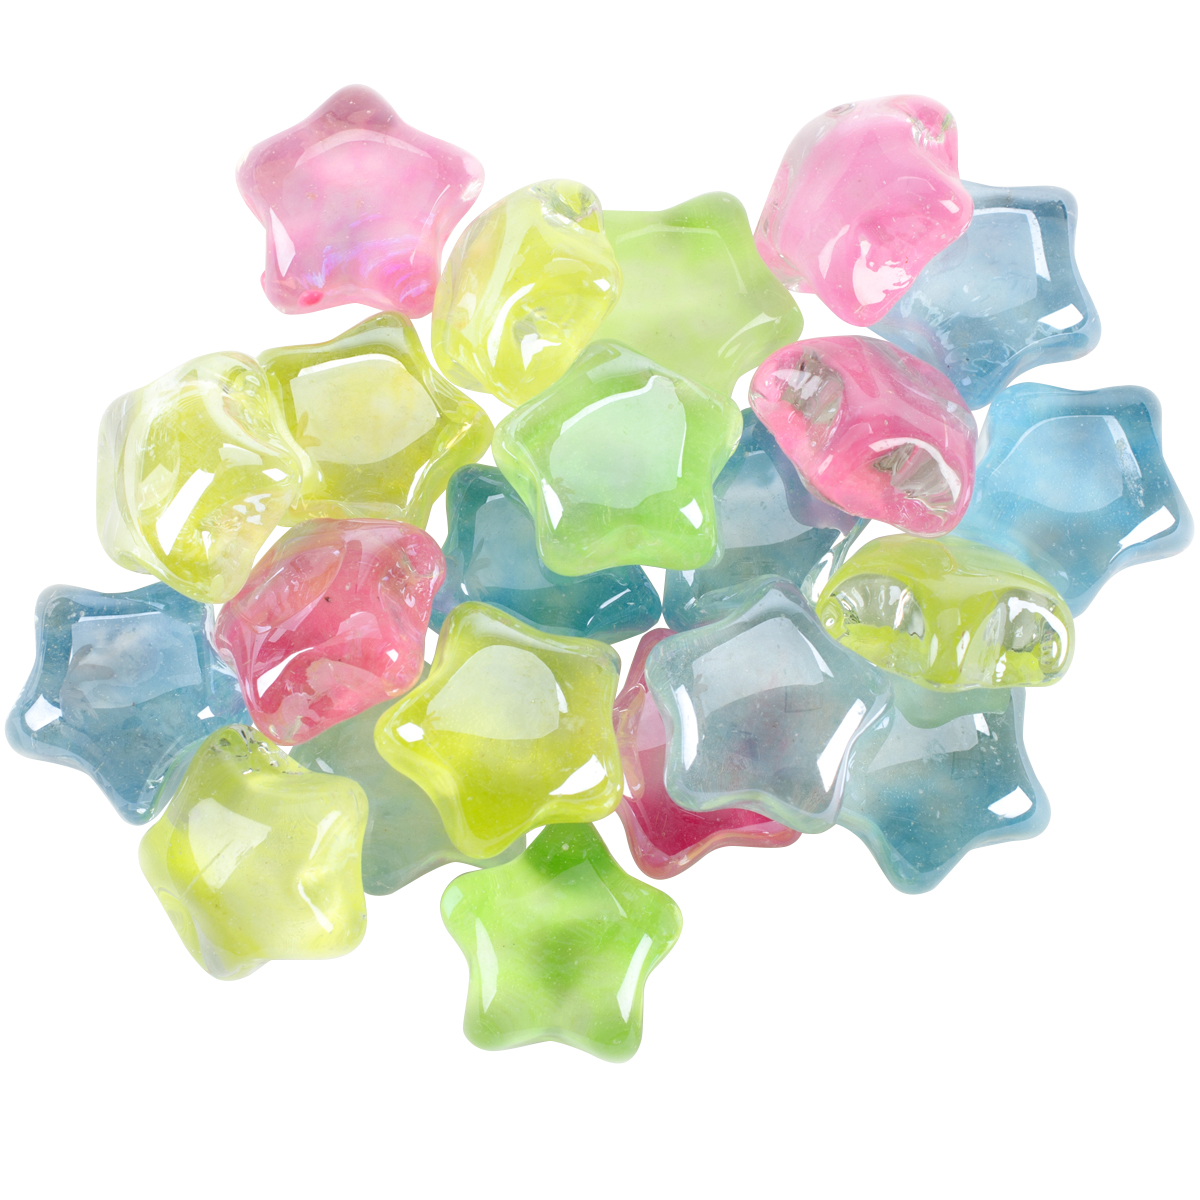 Midwest Products Mosaic Glass Stars Value Pack, 12 oz, Glow In The Dark